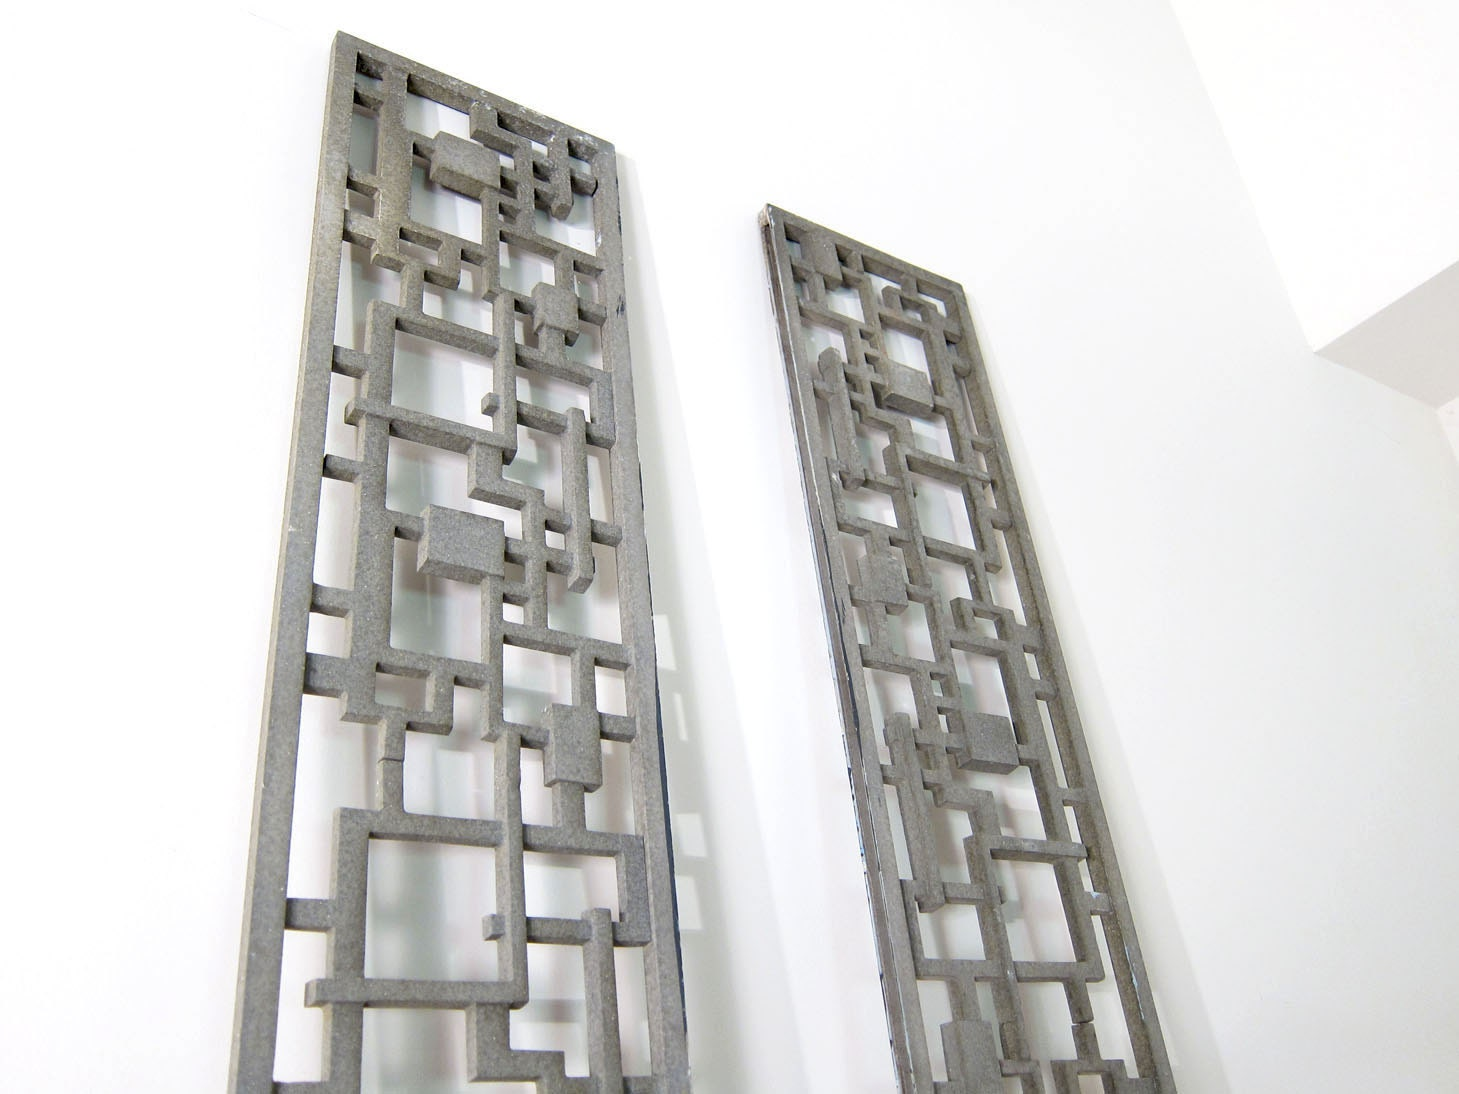 Architectural Perforated Metal Panels : Architectural panels salvage modernist perforated